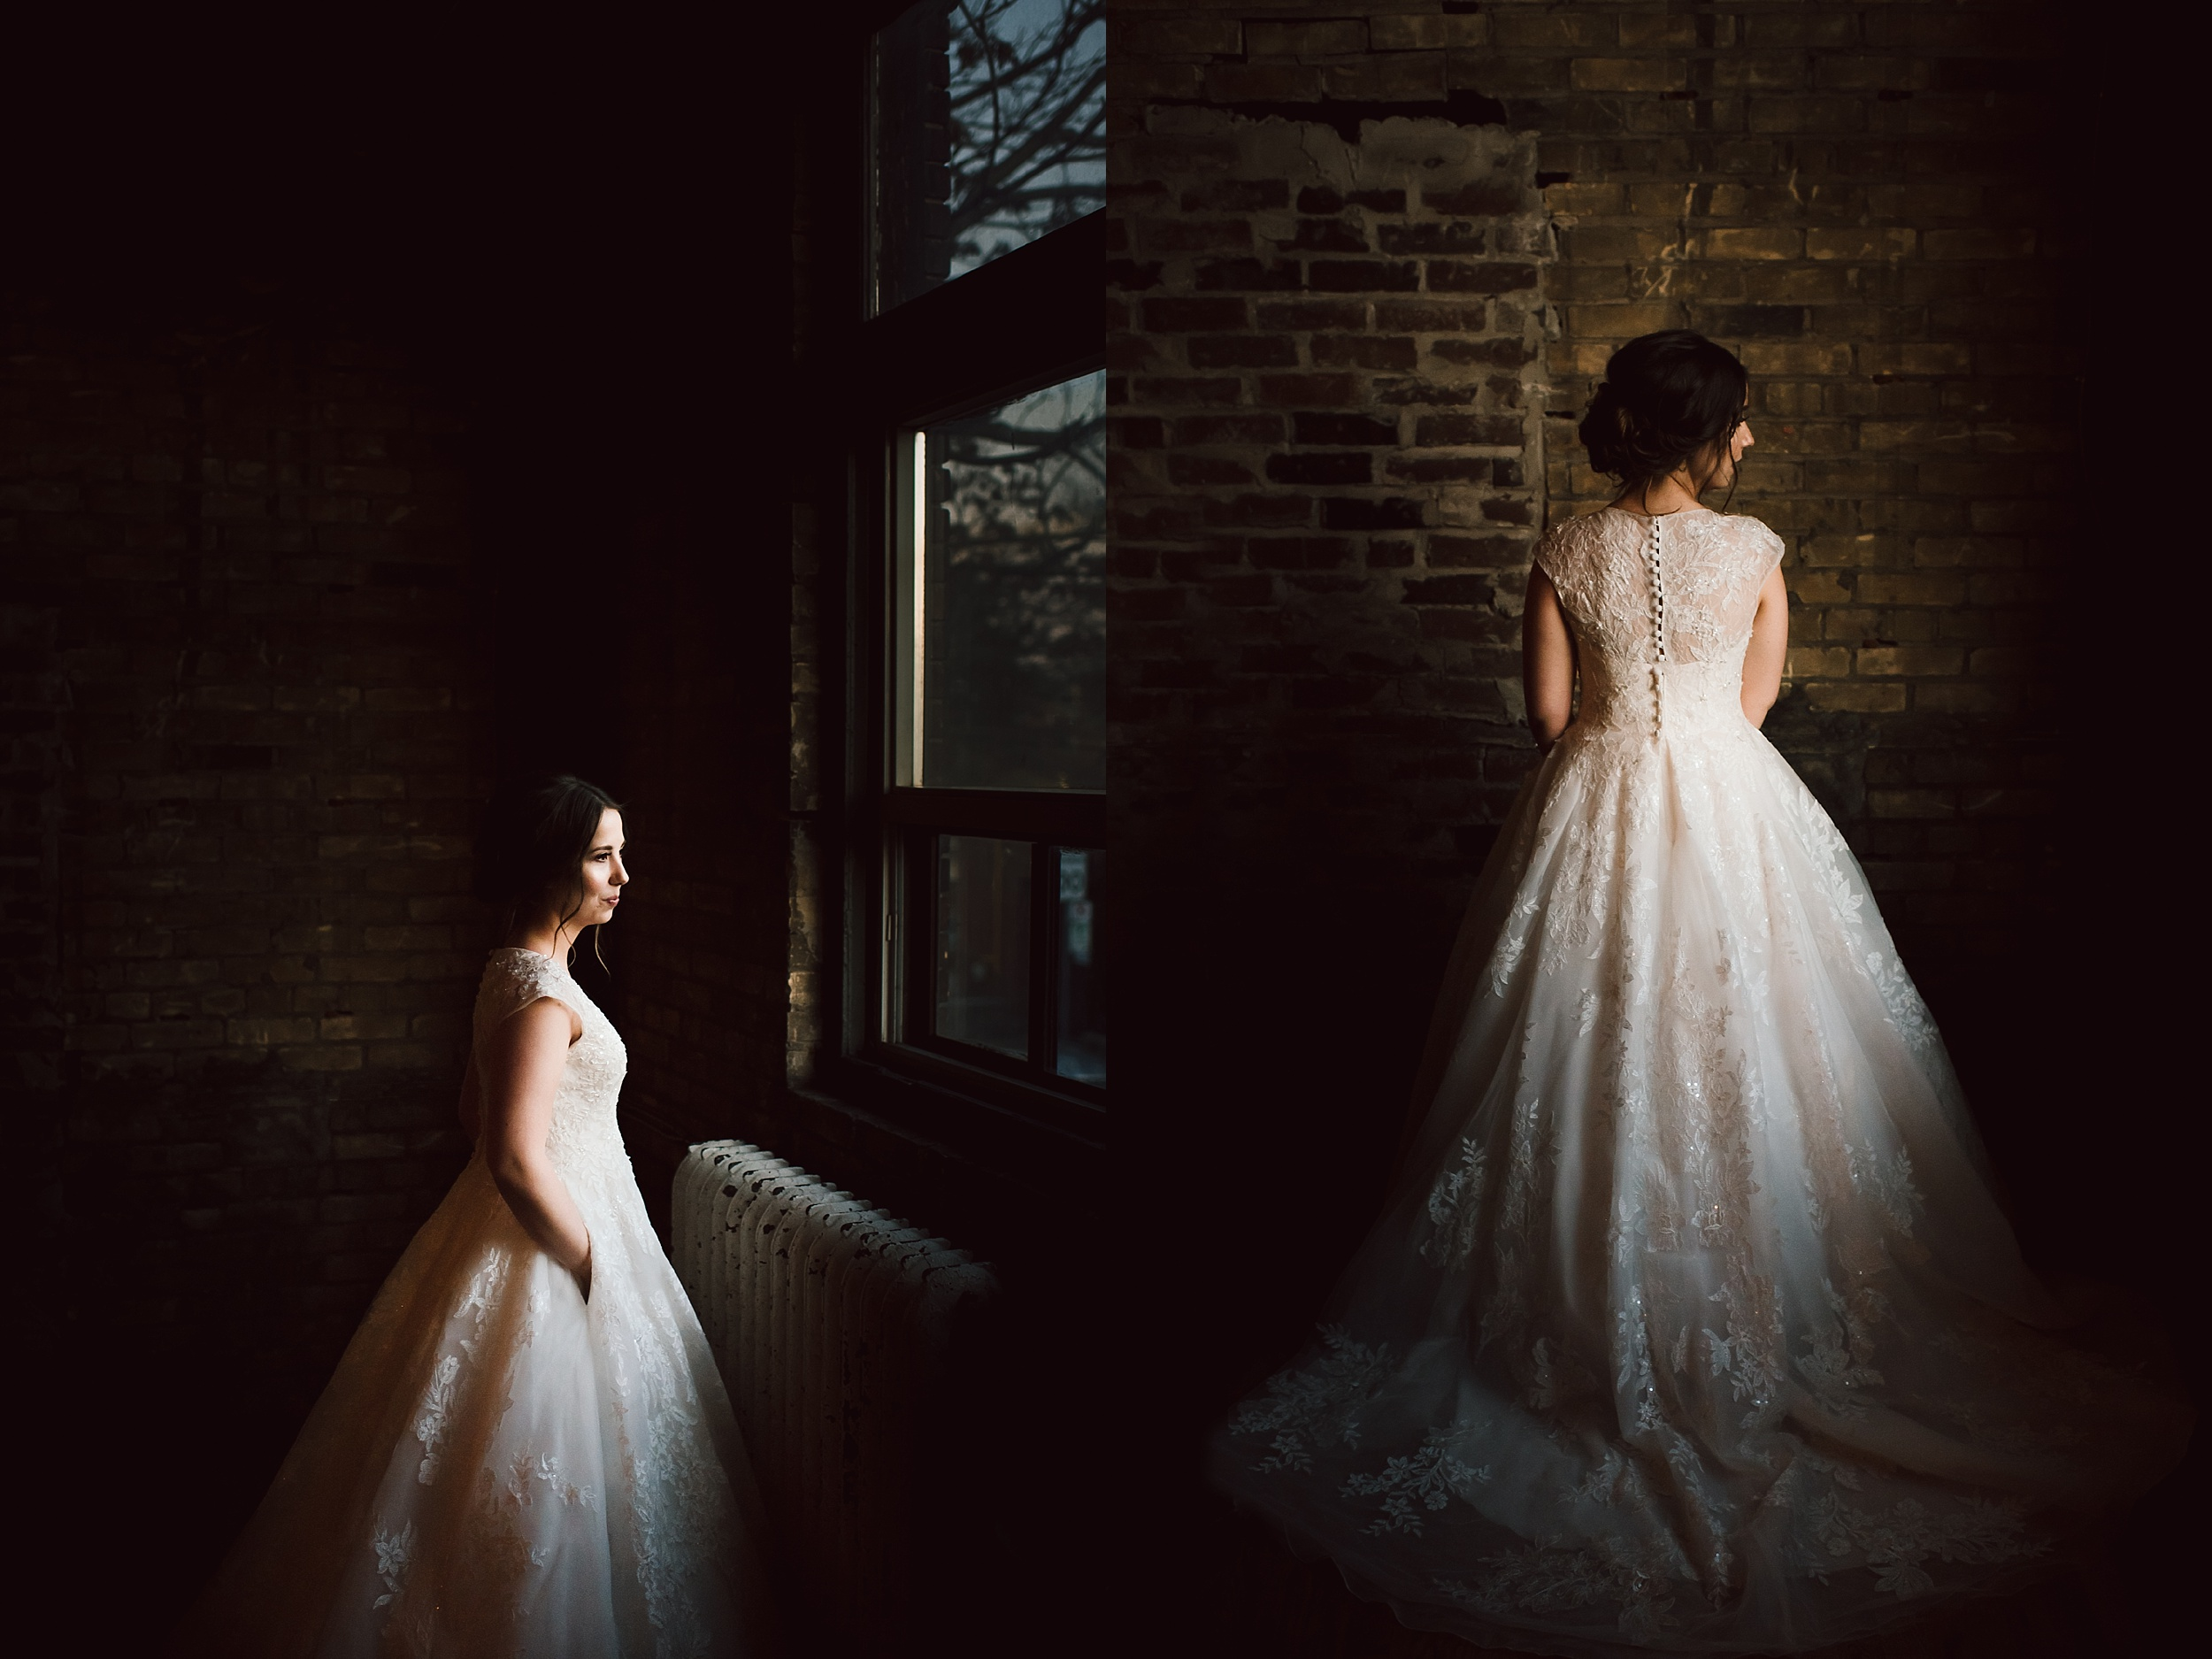 Jam_Factory_Wedding_Toronto_Winter_Wedding_Photographer_0046.jpg